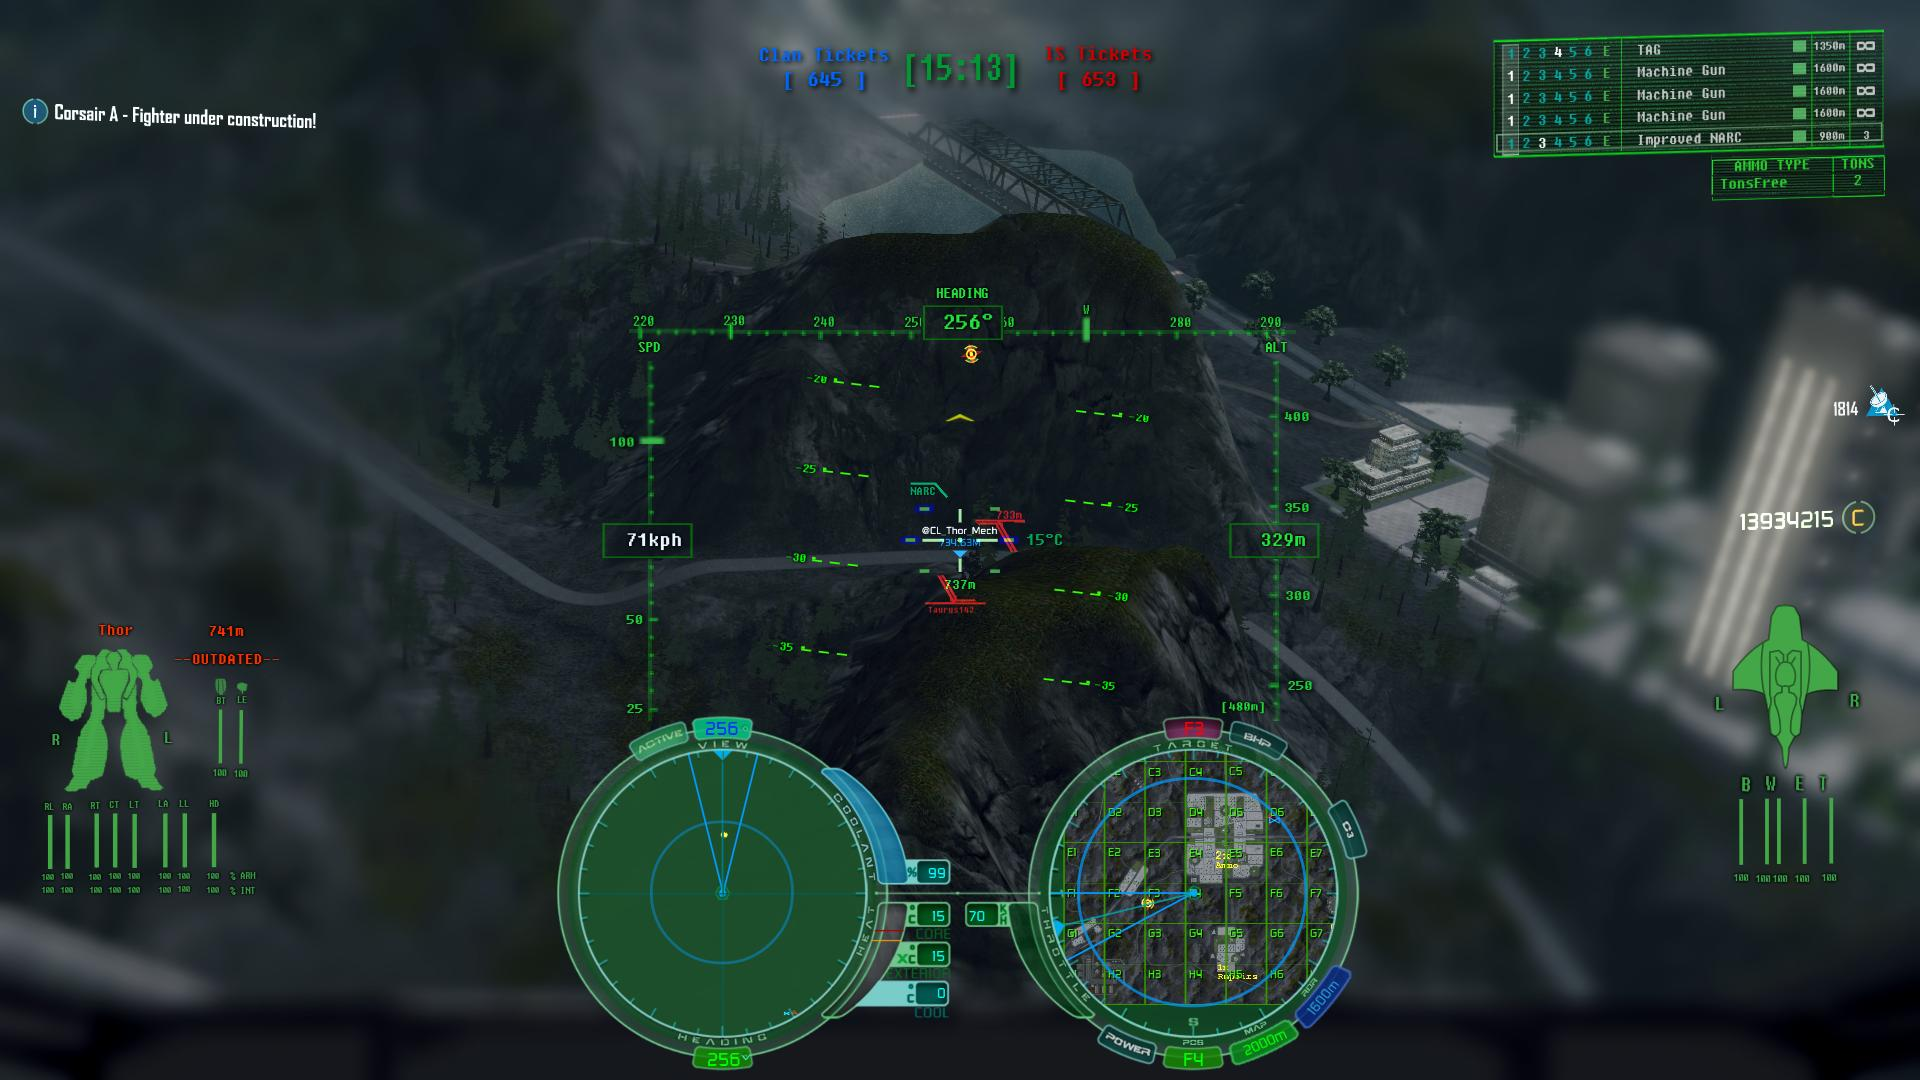 New VTOL/ASF HUD with Updated Crosshair and Info Display